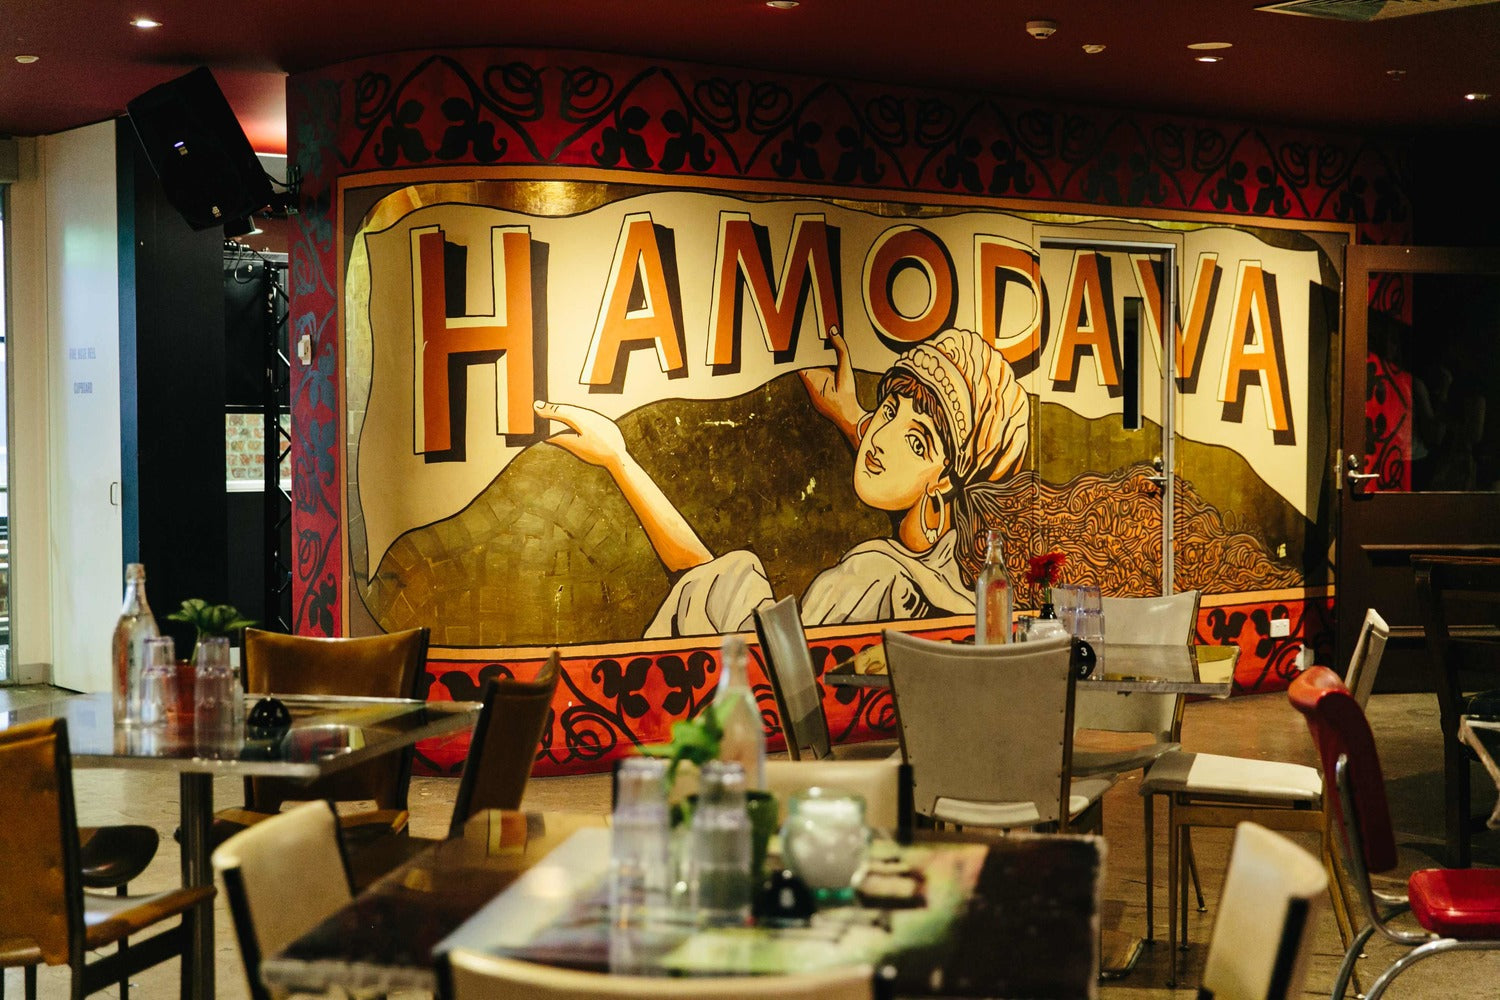 Image of the cafe hamodava. Chairs, tables and a beautiful wall art piece with the word Hamodava.